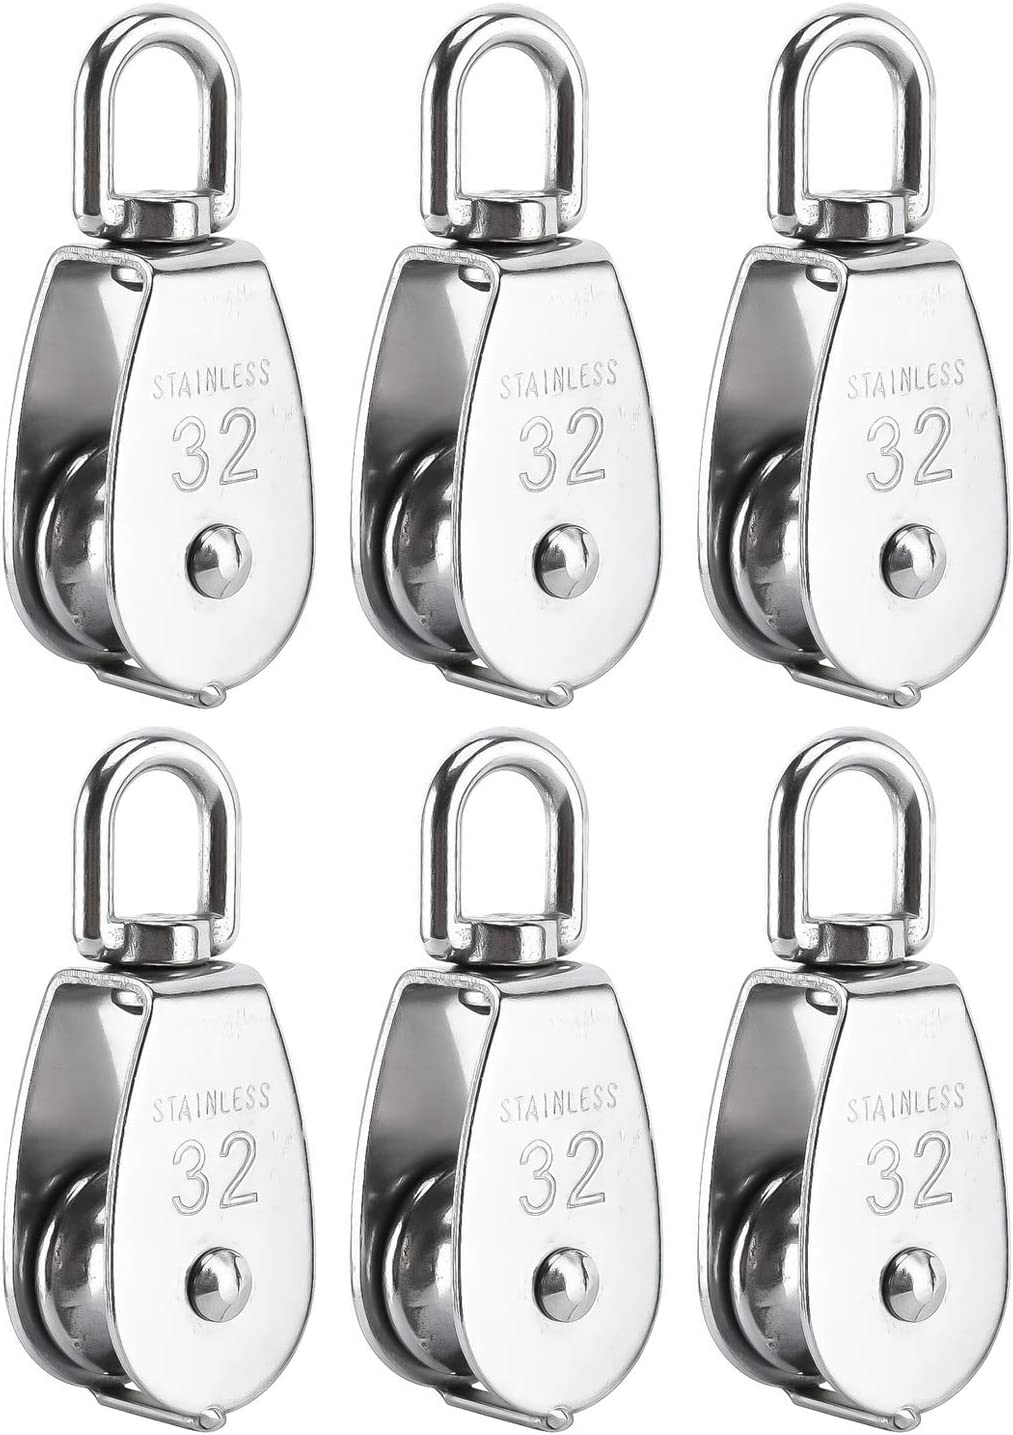 304 Stainless Steel Heavy Duty Single Wheel Swivel Lifting Rope Pulley Block BNYZWOT 6 Pack M32 Lifting Single Pulley Roller Loading 551Ibs